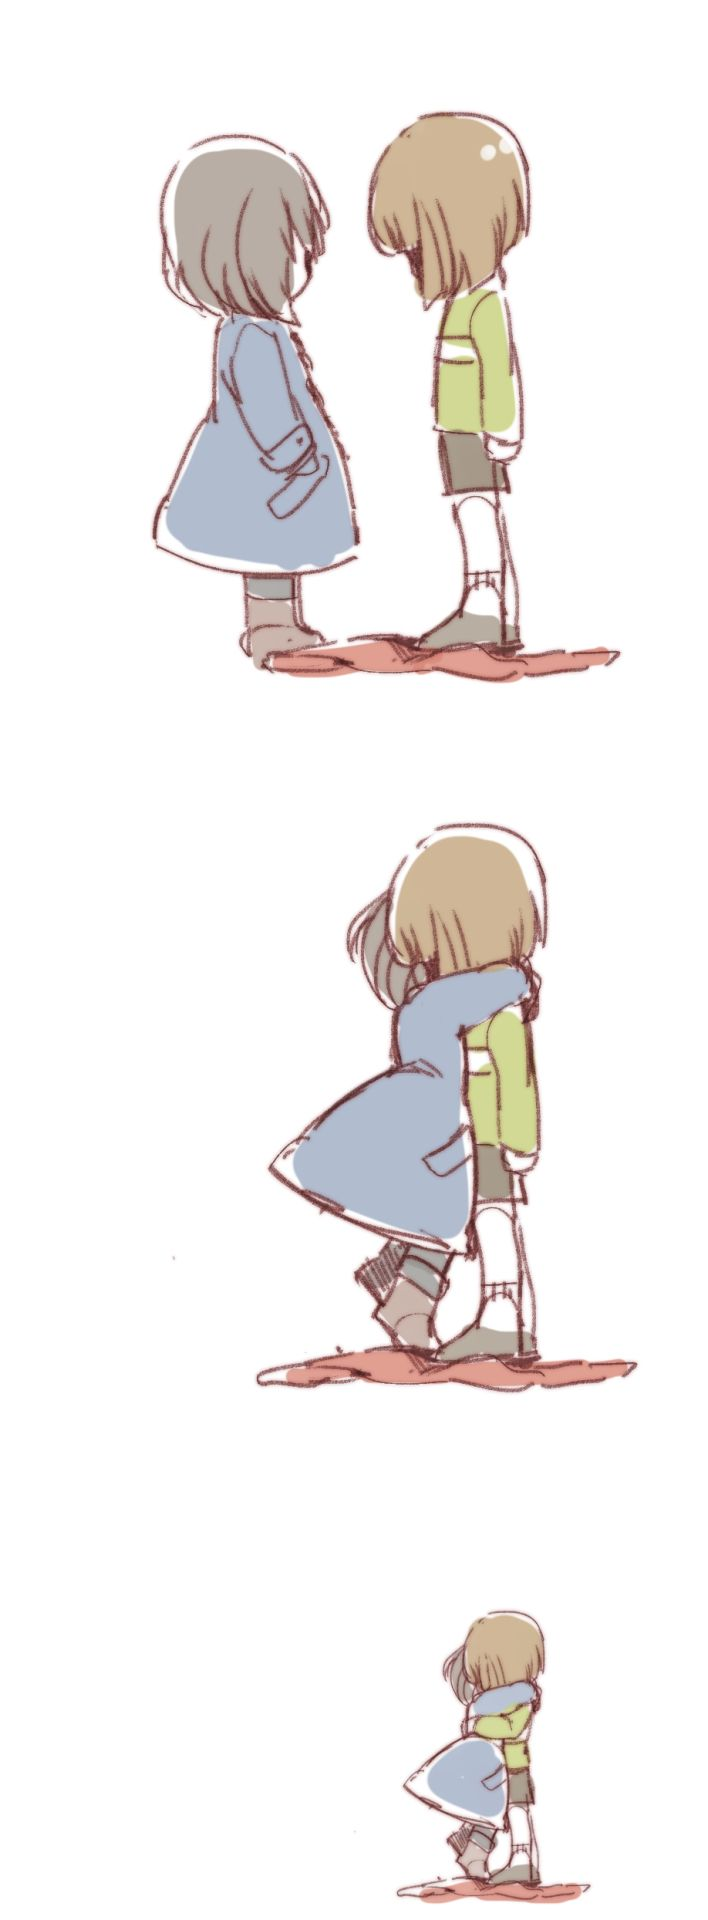 Undertale Chara and Frisk comic